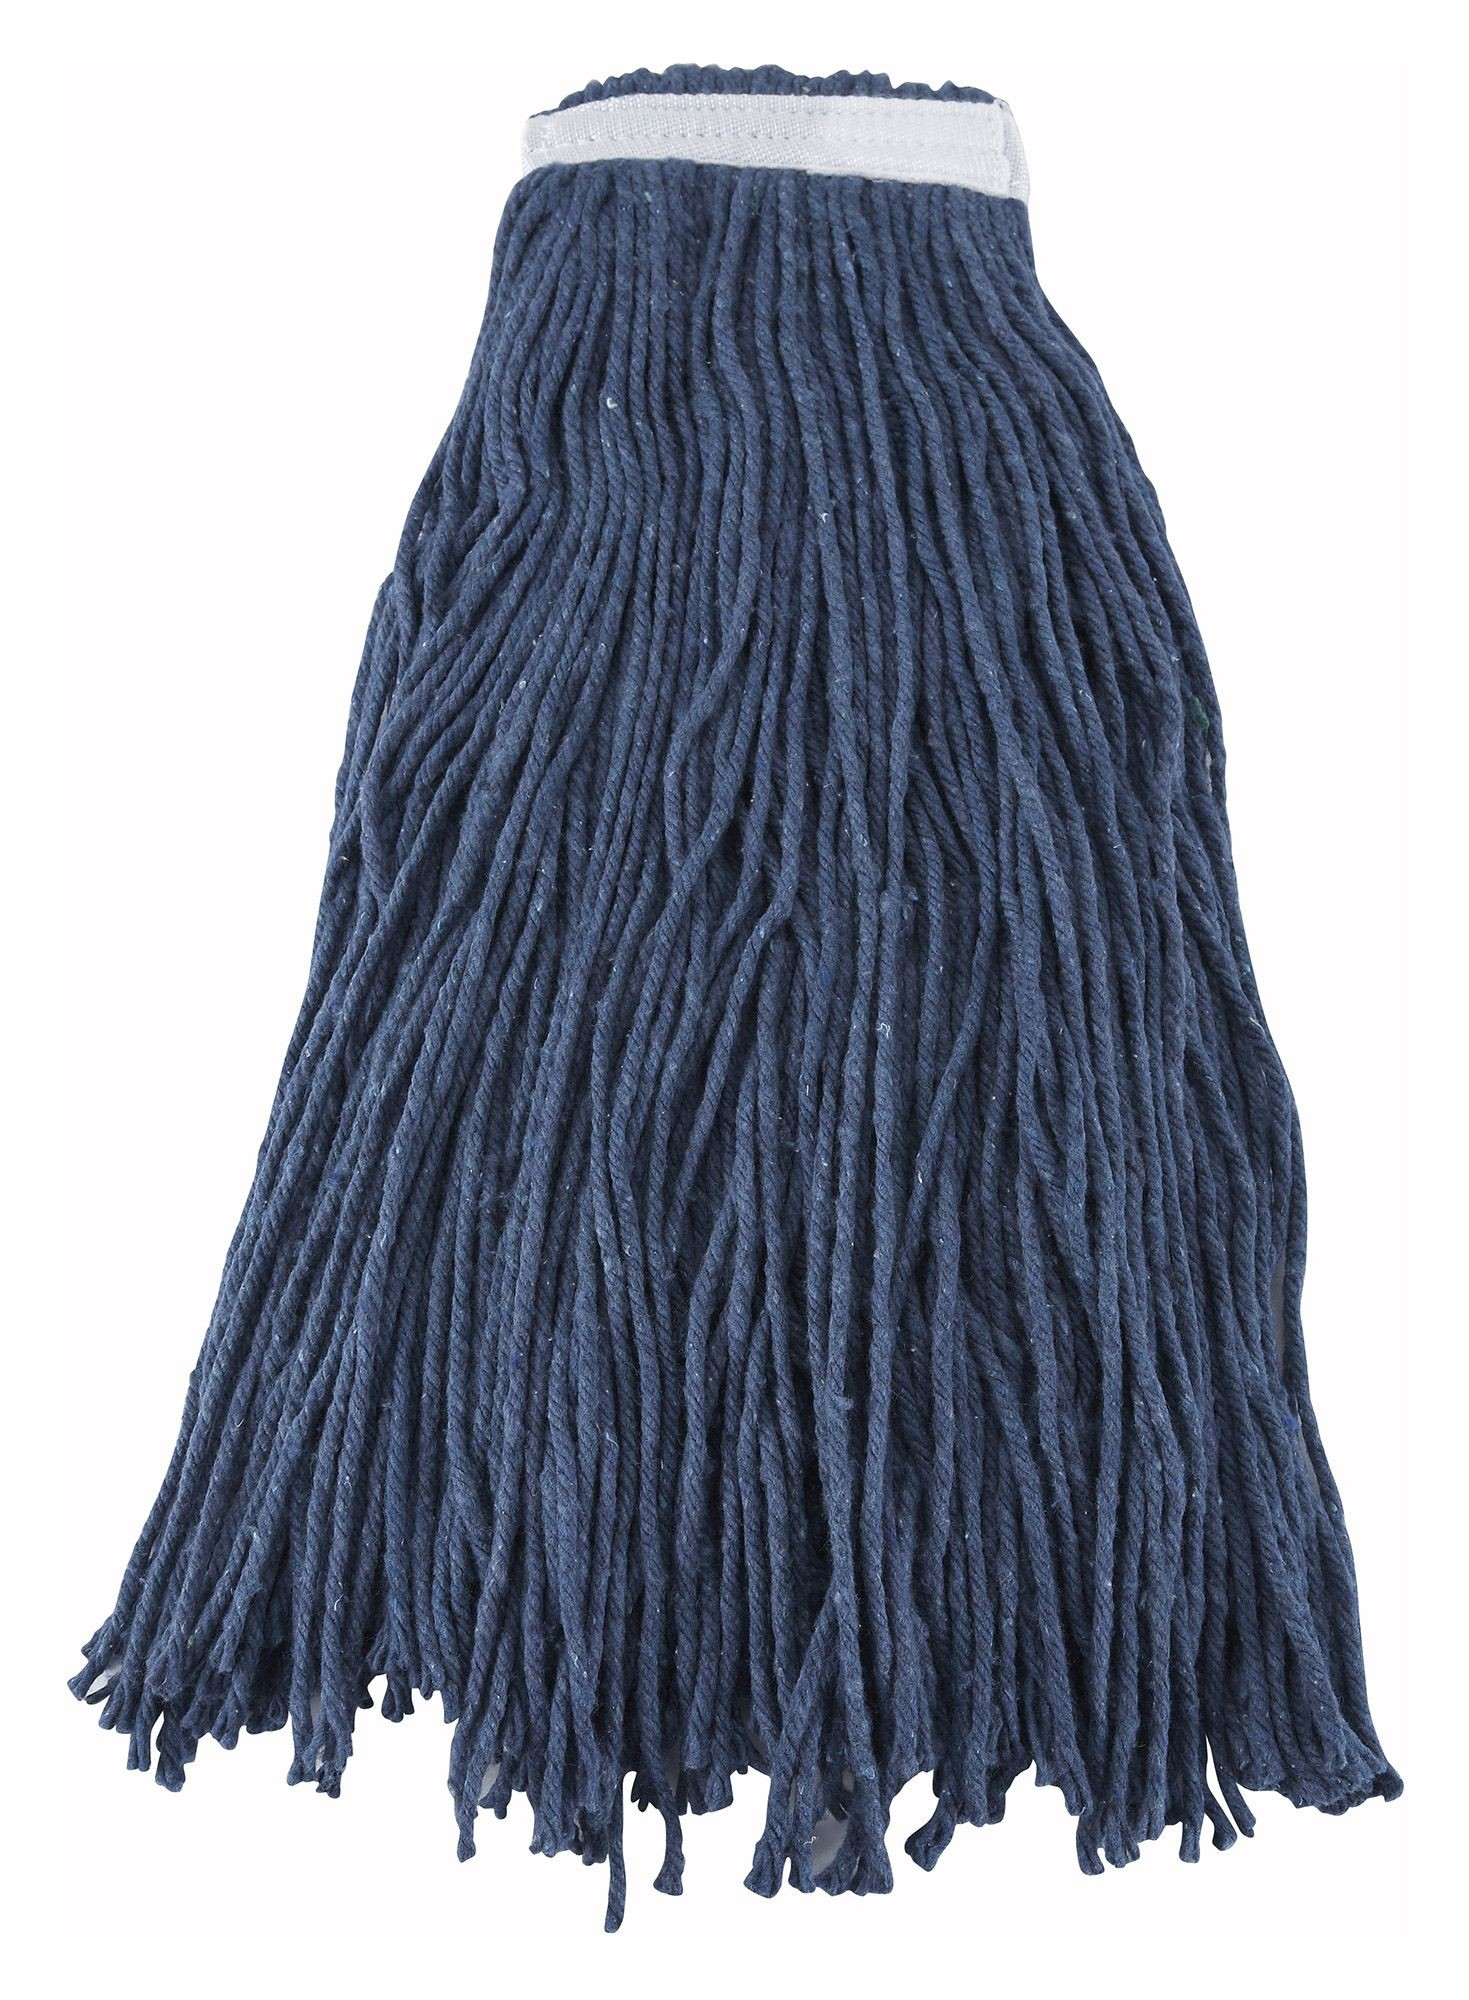 Winco MOP-32C Blue Yarn Mop Head, Cut Head 800g, 32 oz.